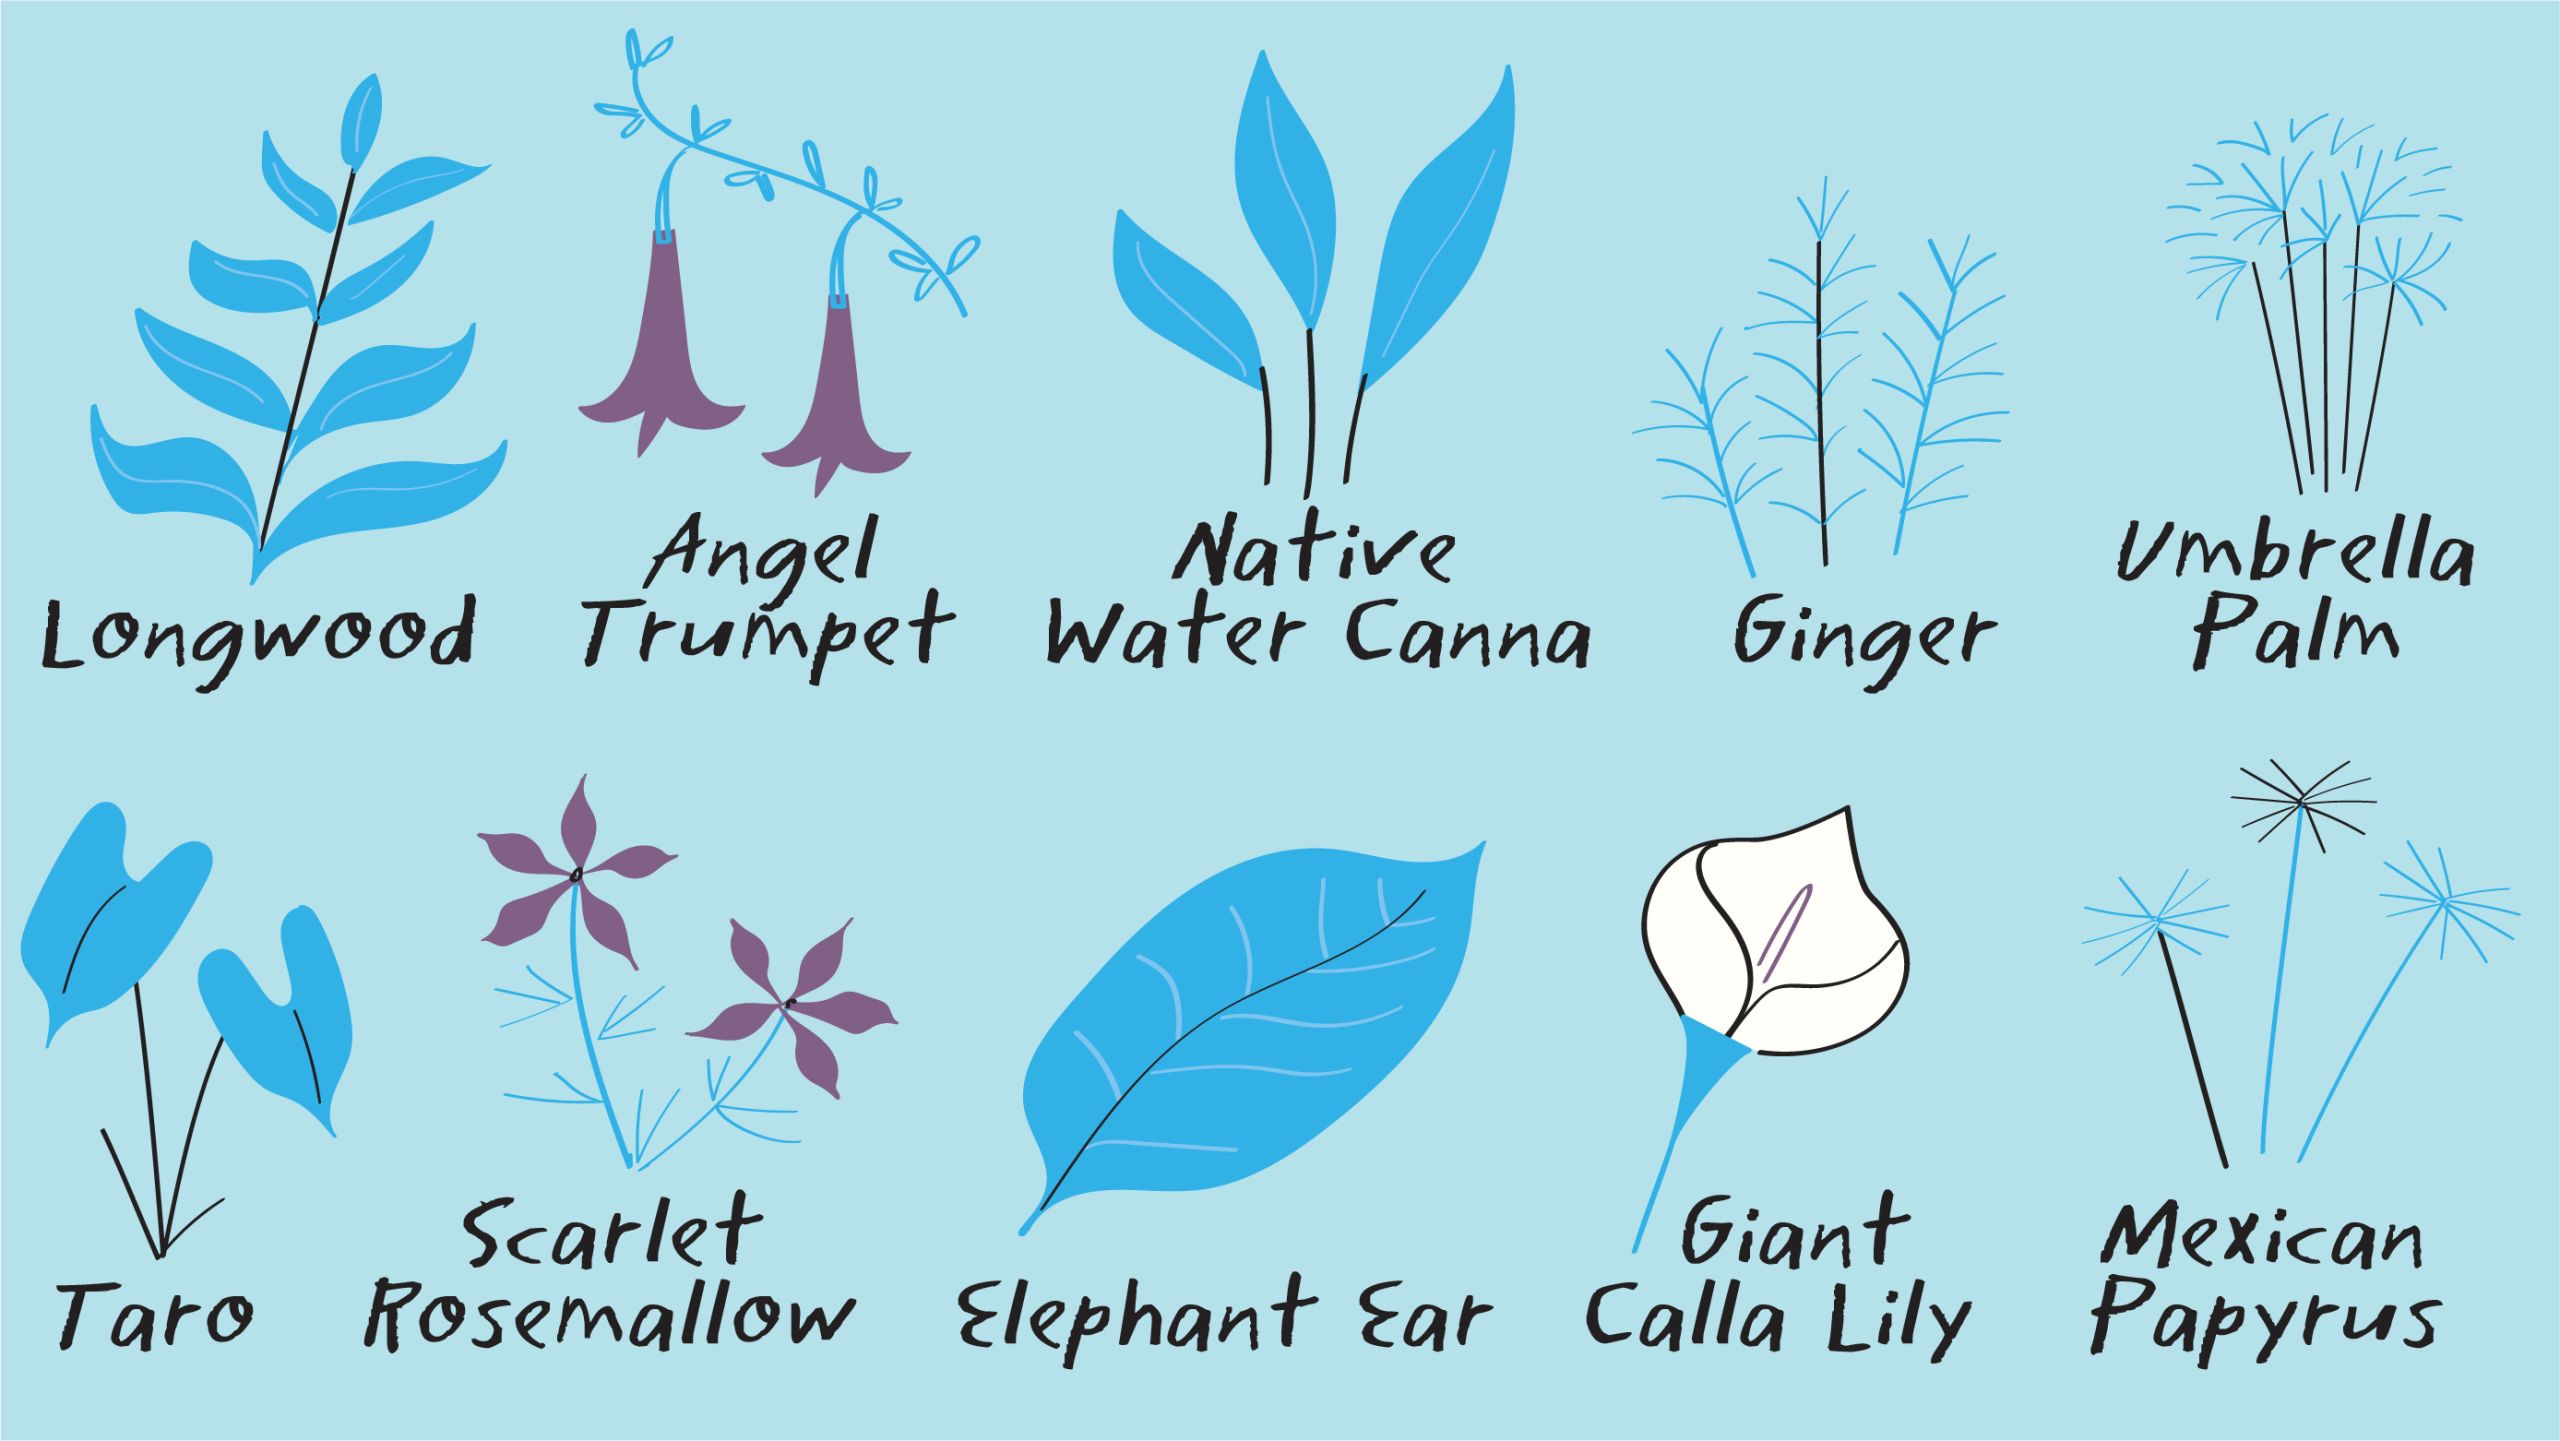 Illustration of the plants that grow in Emory's WaterHub green house. They include: longwood, angel trumpet, native water canna, ginger, umbrella palm, taro, scarlet rosemallow, elephant ear, giant calla lily, and mexican papyrus.